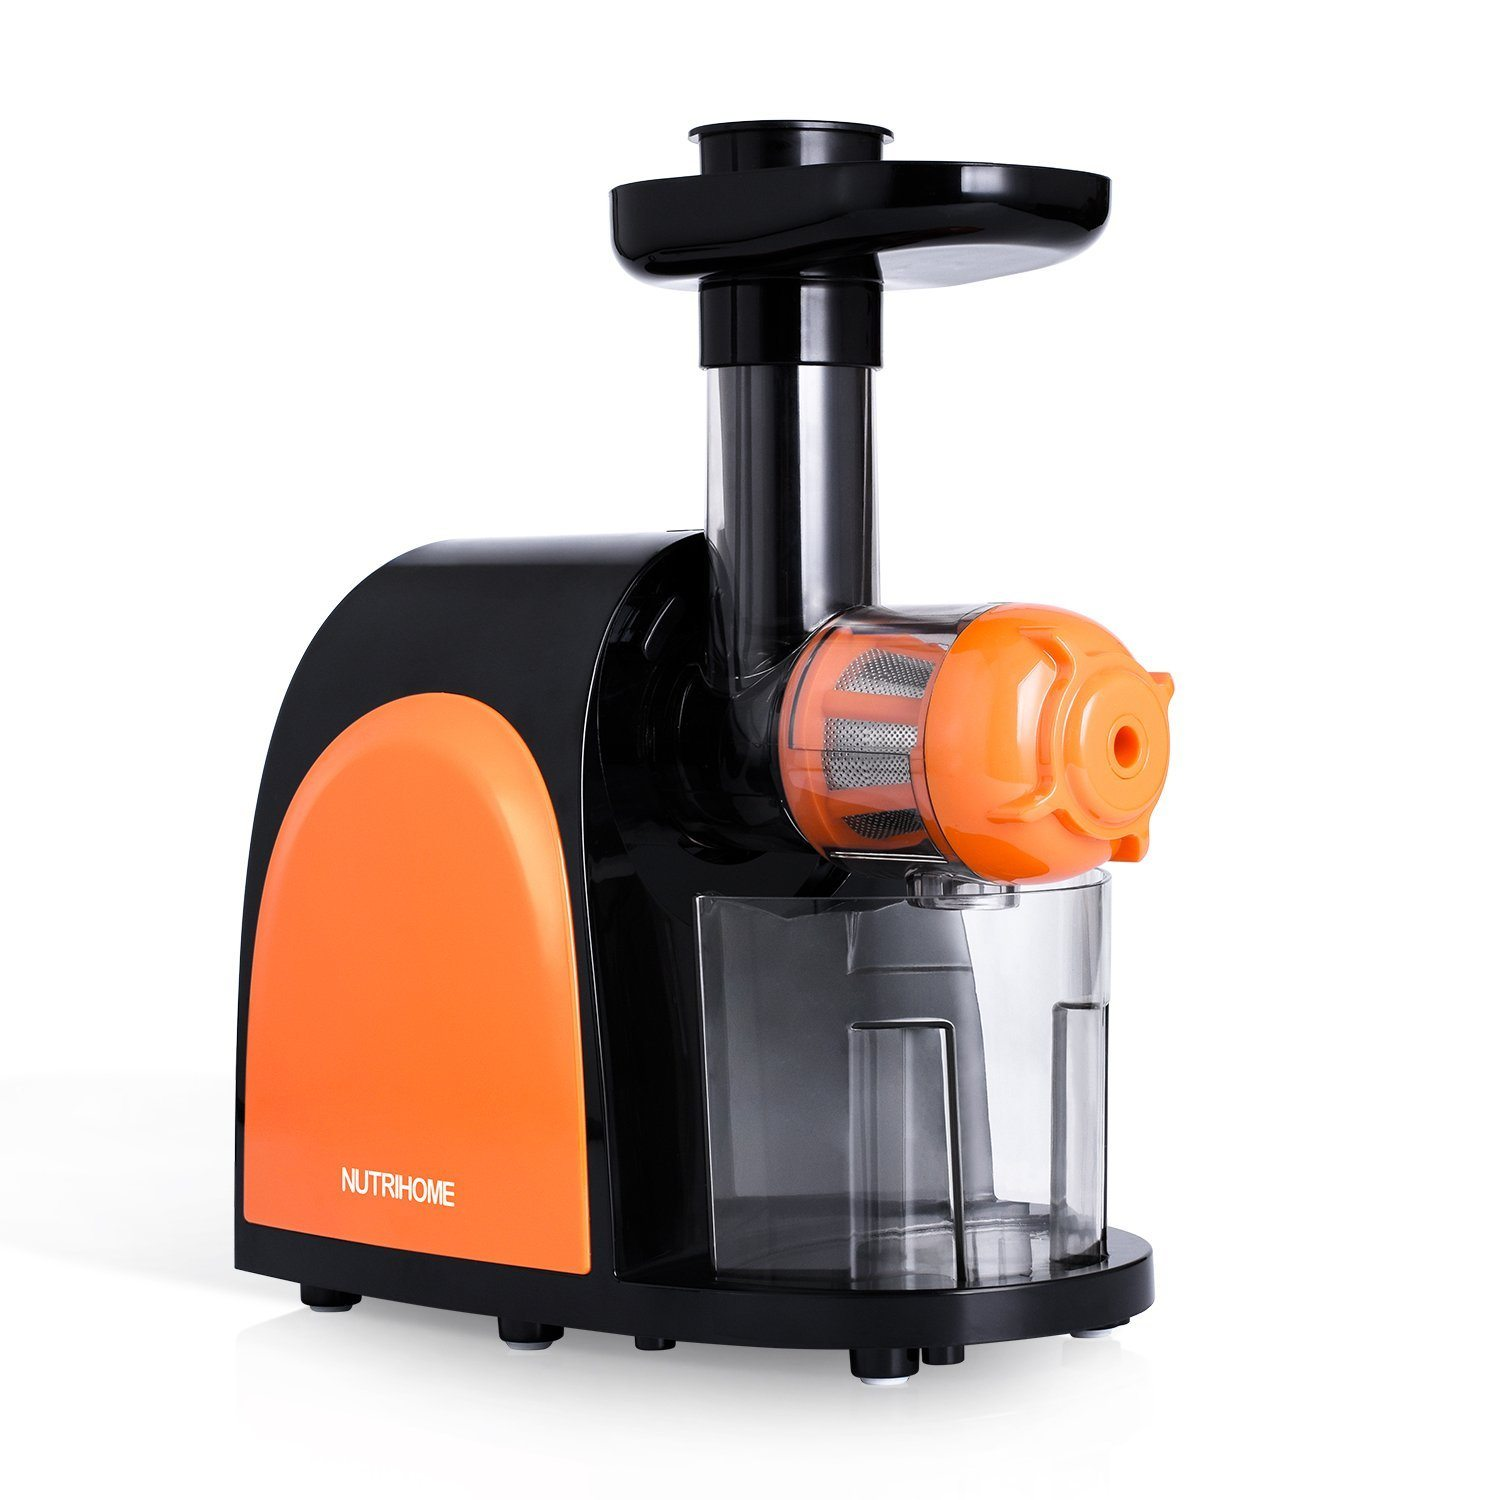 Best Masticating Juicer Extractor : Best Fruit Juicer: Buying Advice & Top 5 Reviews